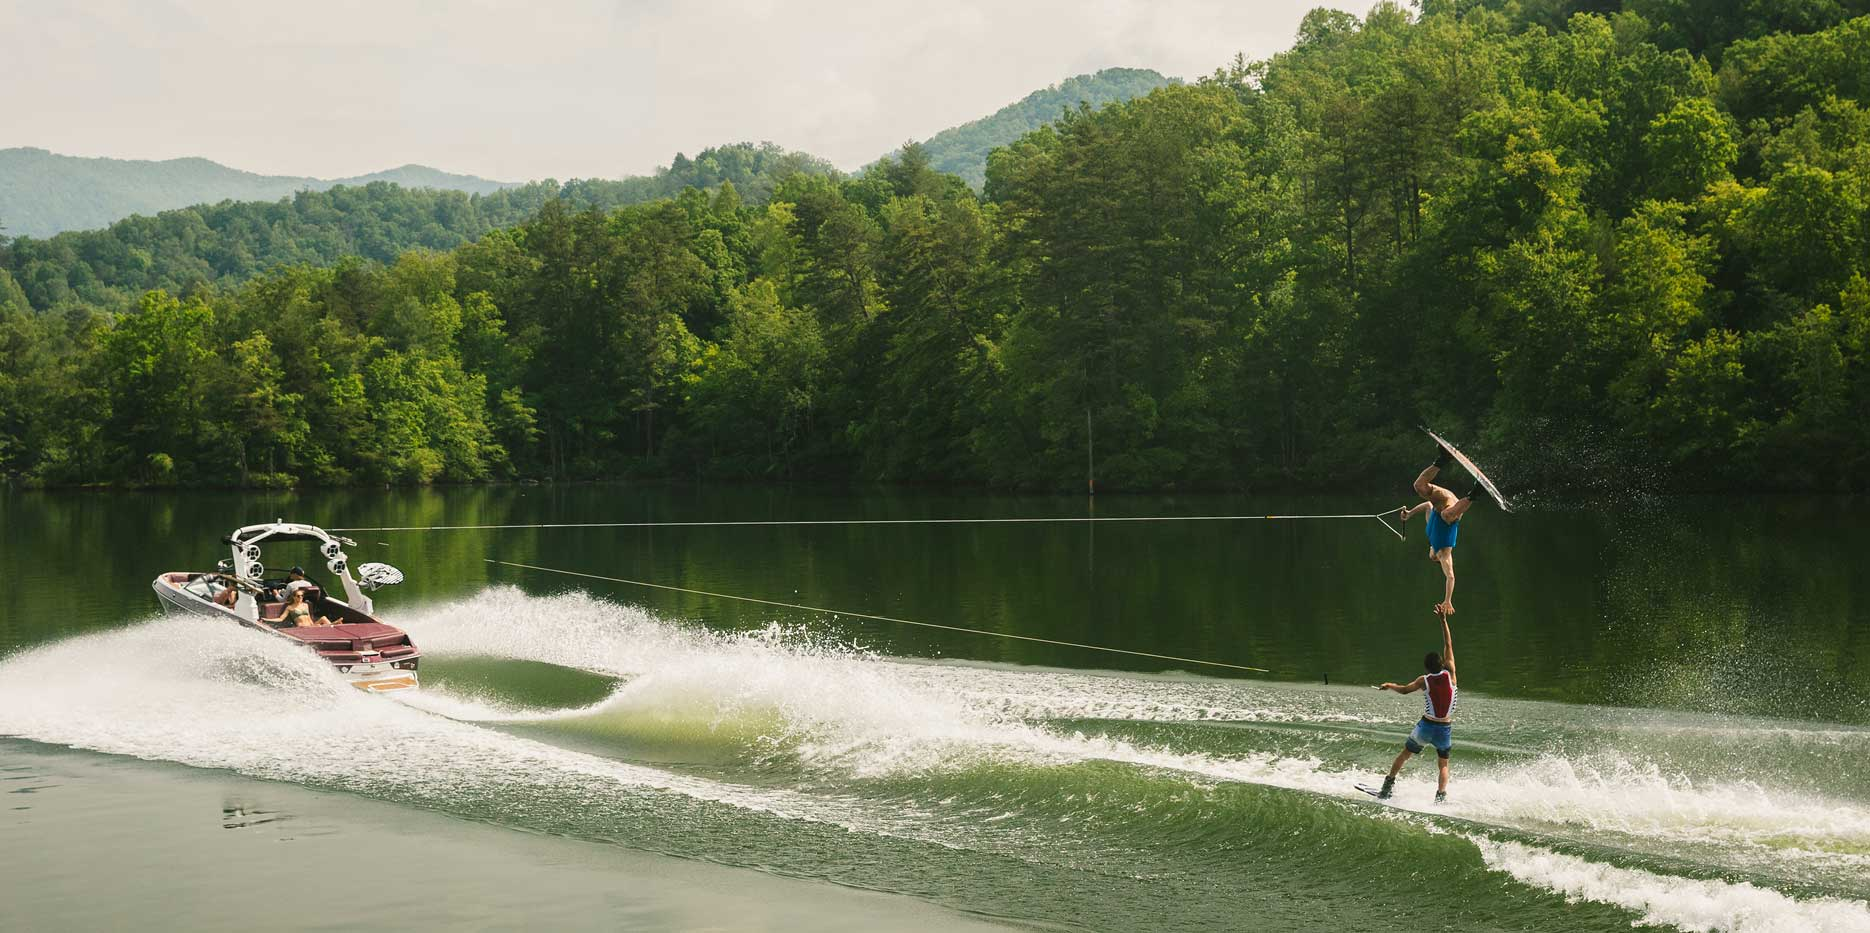 The ultimate playground for doubles wakeboarding.